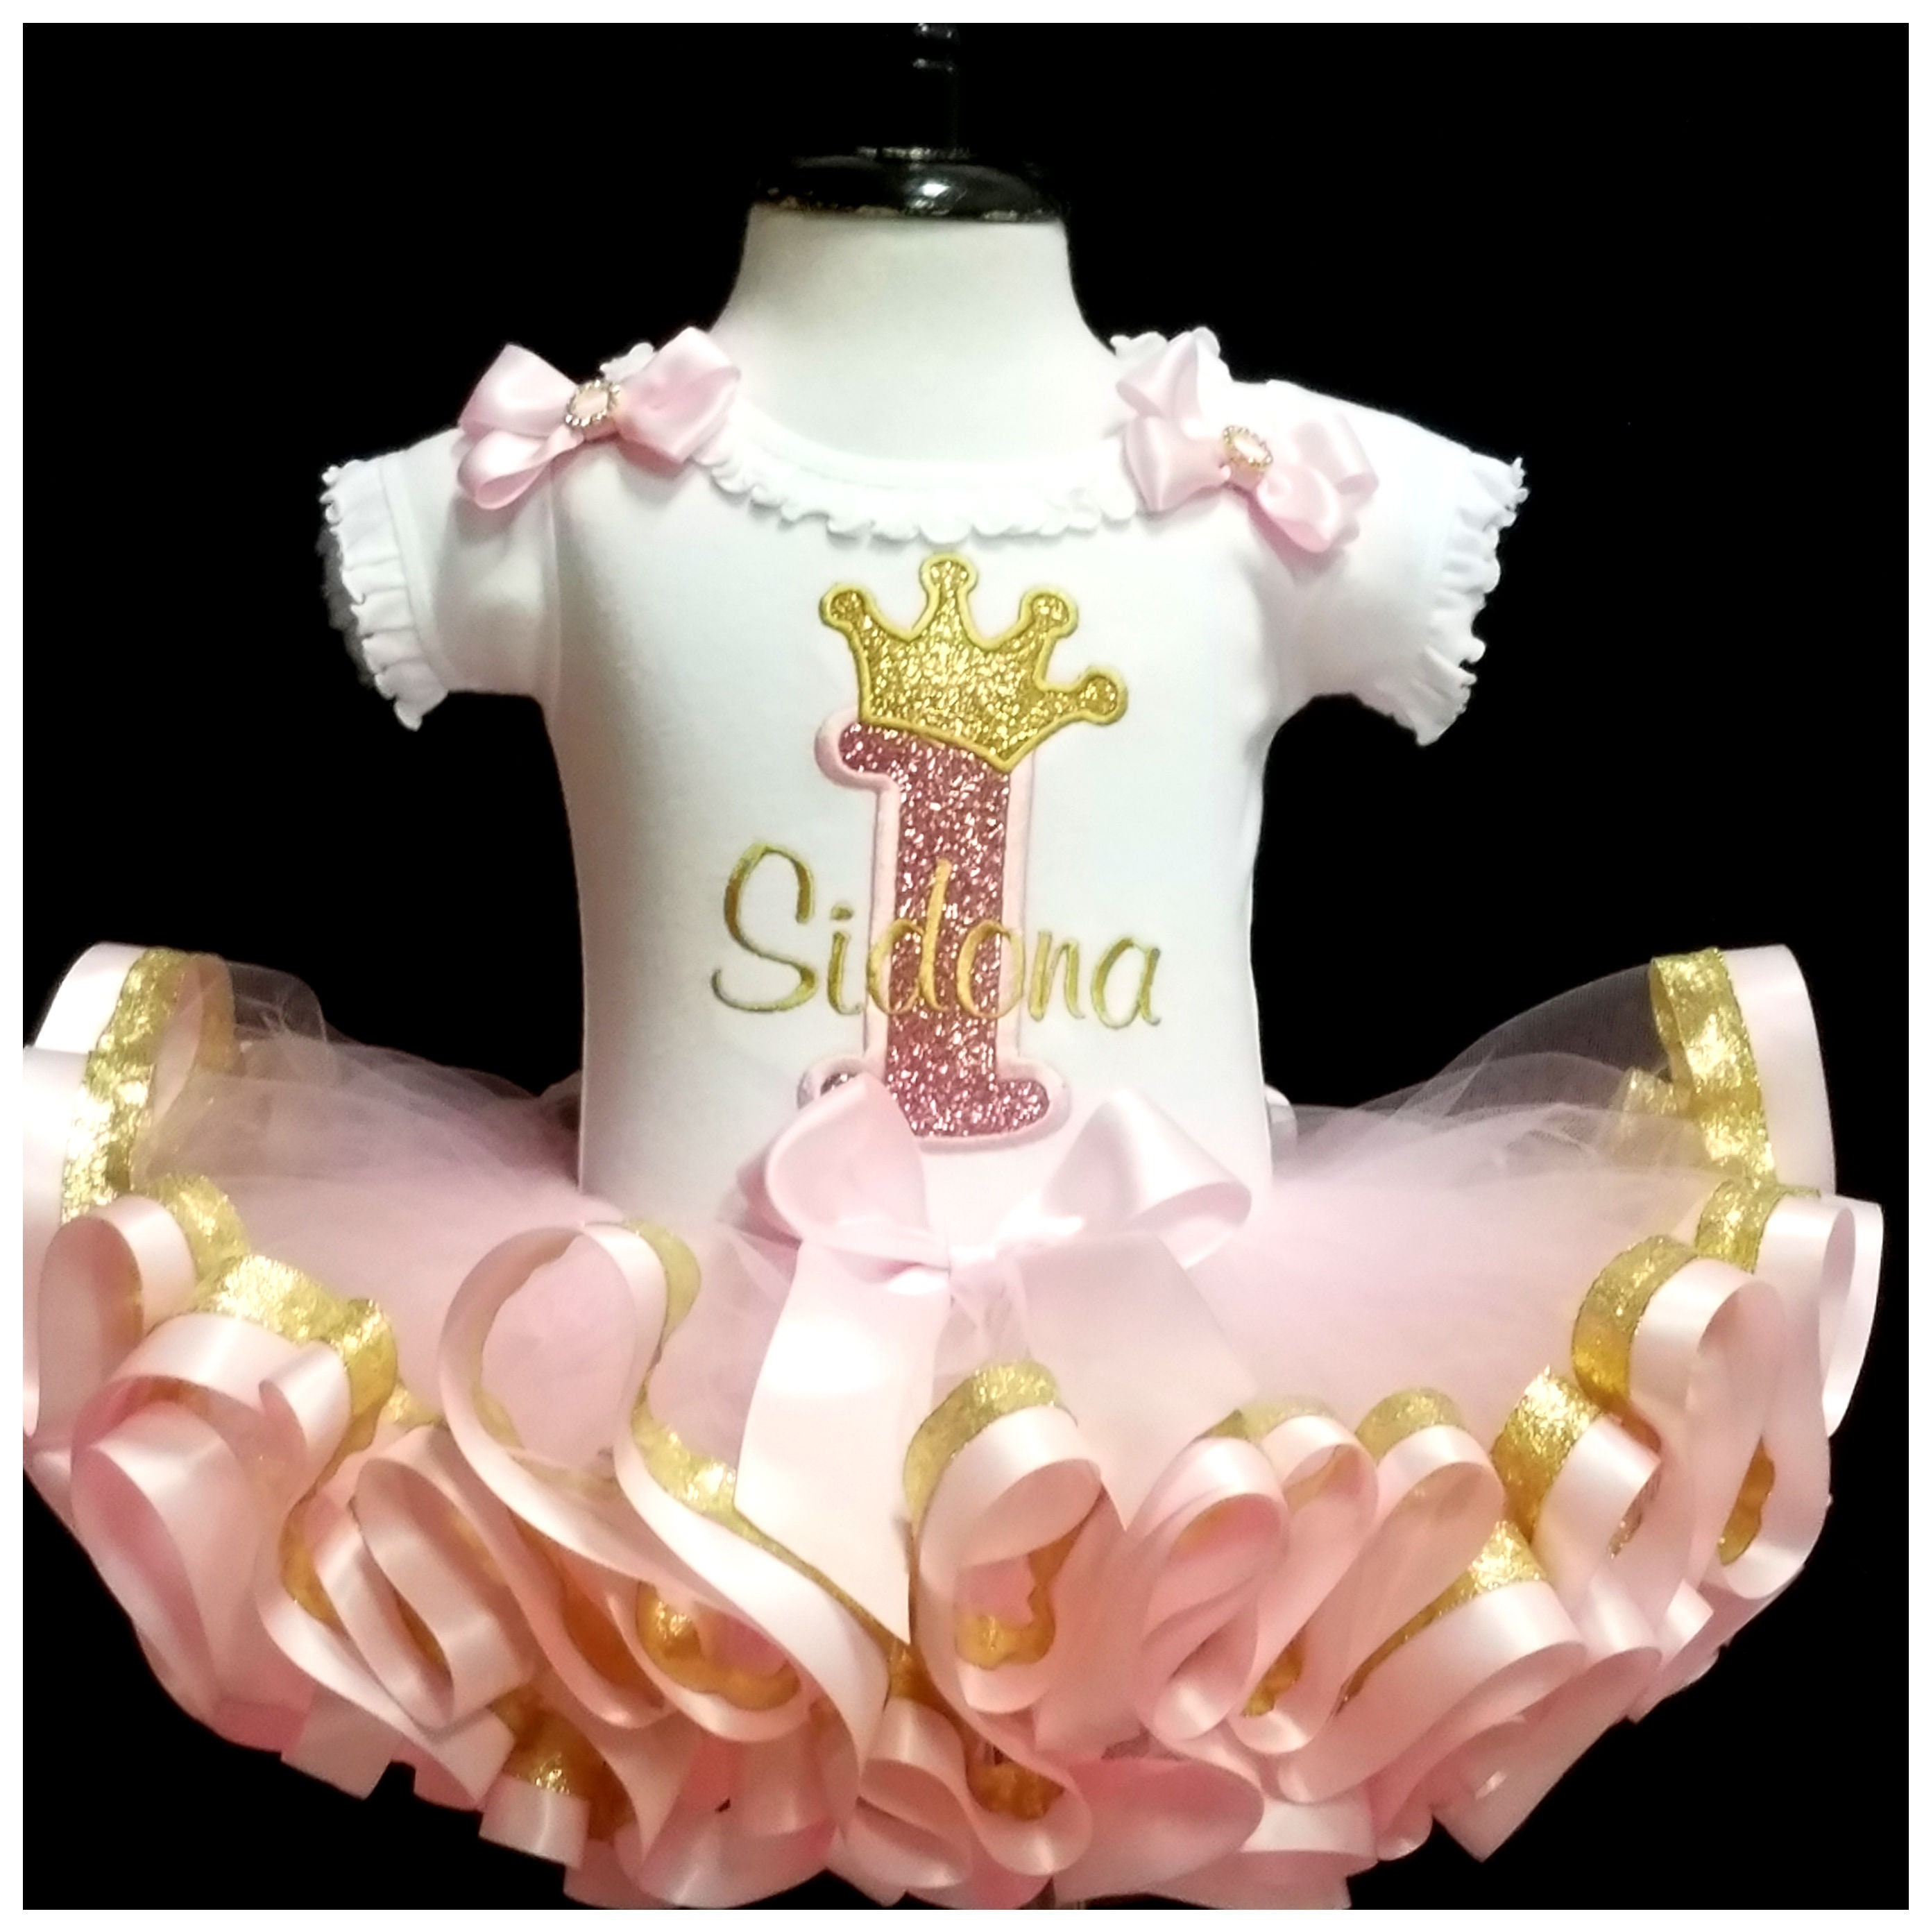 pink and gold birthday outfit 1st birthday pink and gold birthday princess crown birthday set ribbon trimmed tutu outfit bloomers  tiara